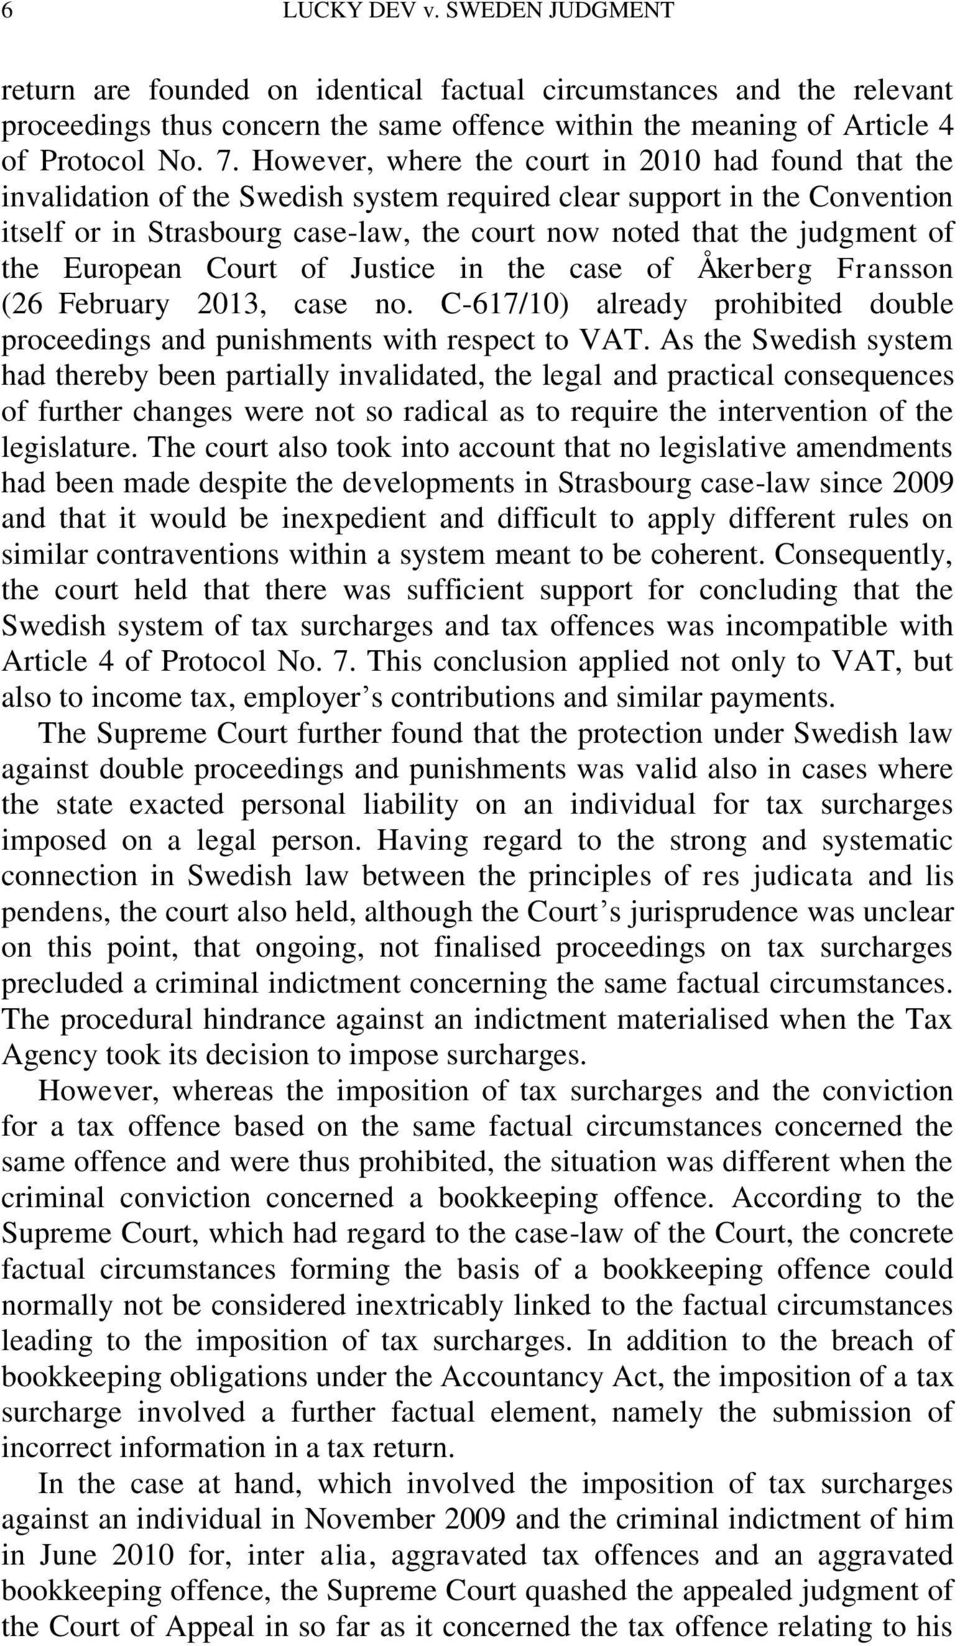 of the European Court of Justice in the case of Åkerberg Fransson (26 February 2013, case no. C-617/10) already prohibited double proceedings and punishments with respect to VAT.